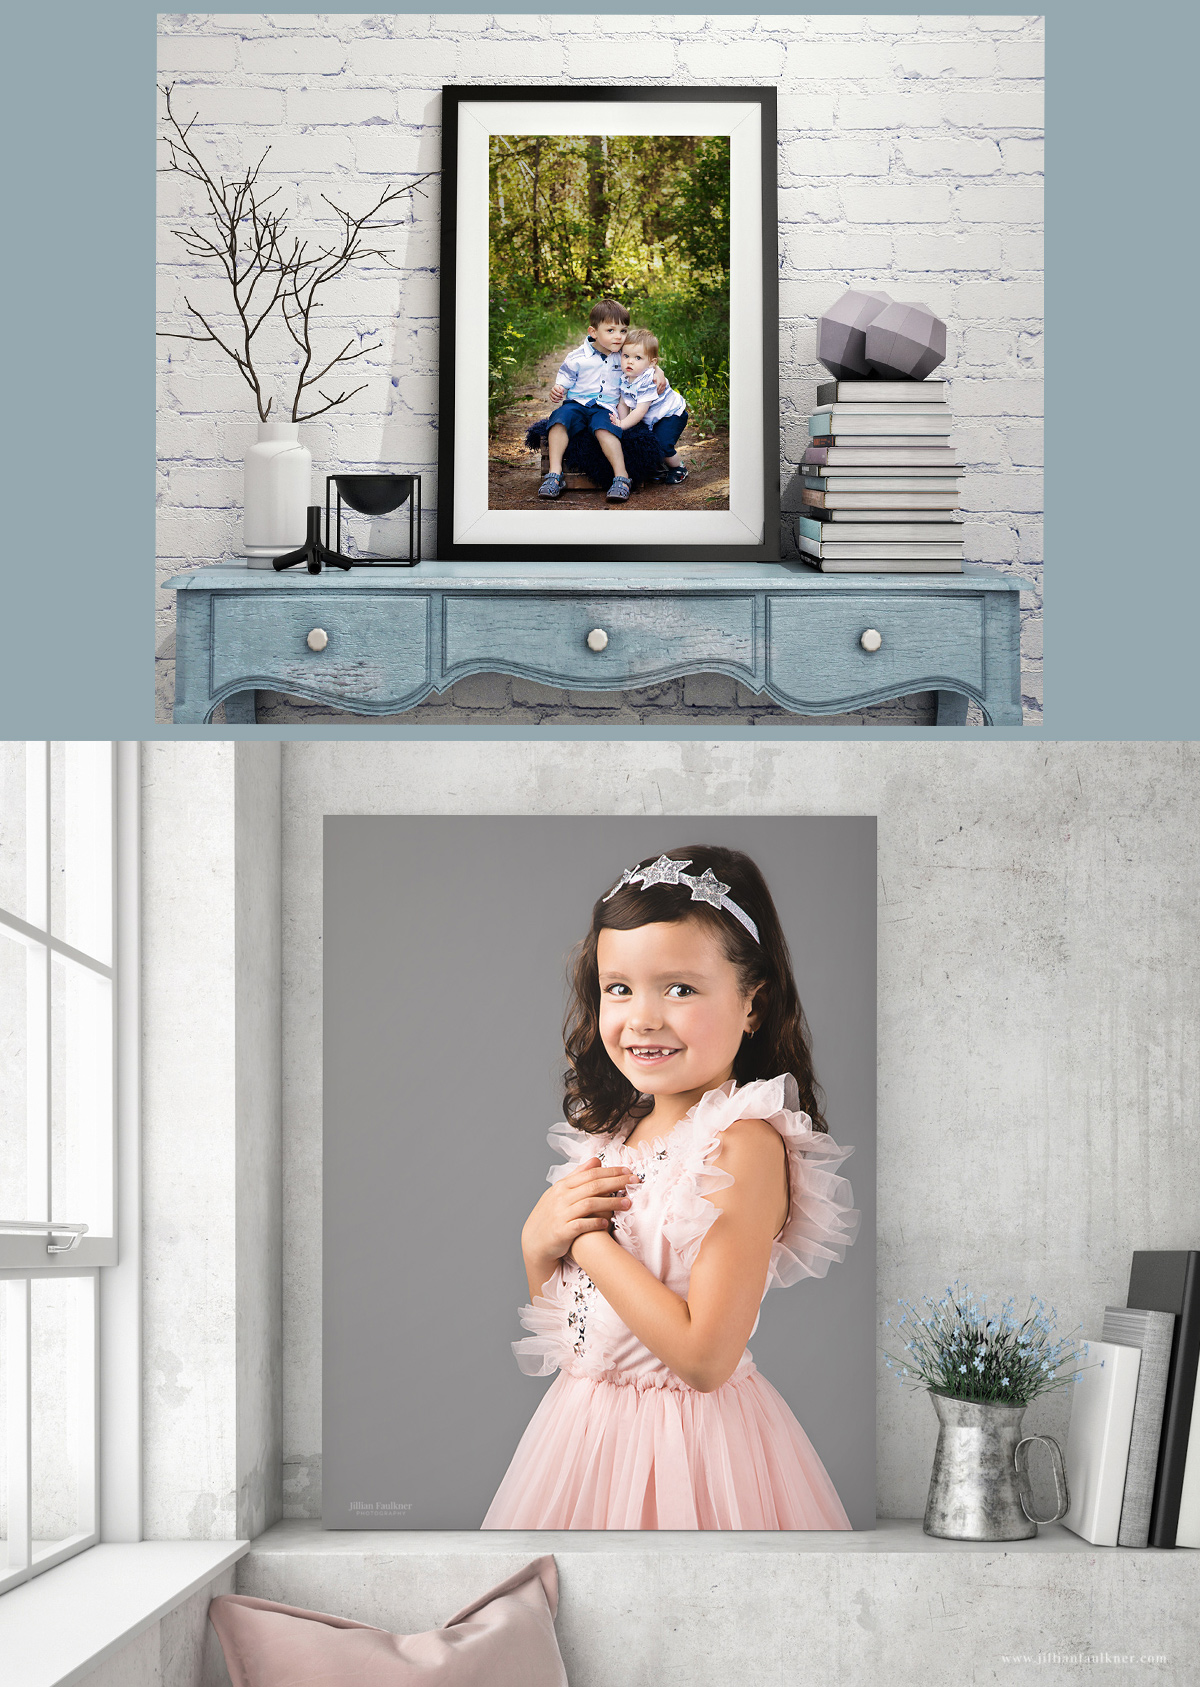 Jillian Faulkner Photography is a fully licensed and insured portrait photography studio in Calgary, Alberta that offers family, child, baby, newborn and maternity photography sessions. Jillian is passionate about printed wall portraits and exceptional customer service.